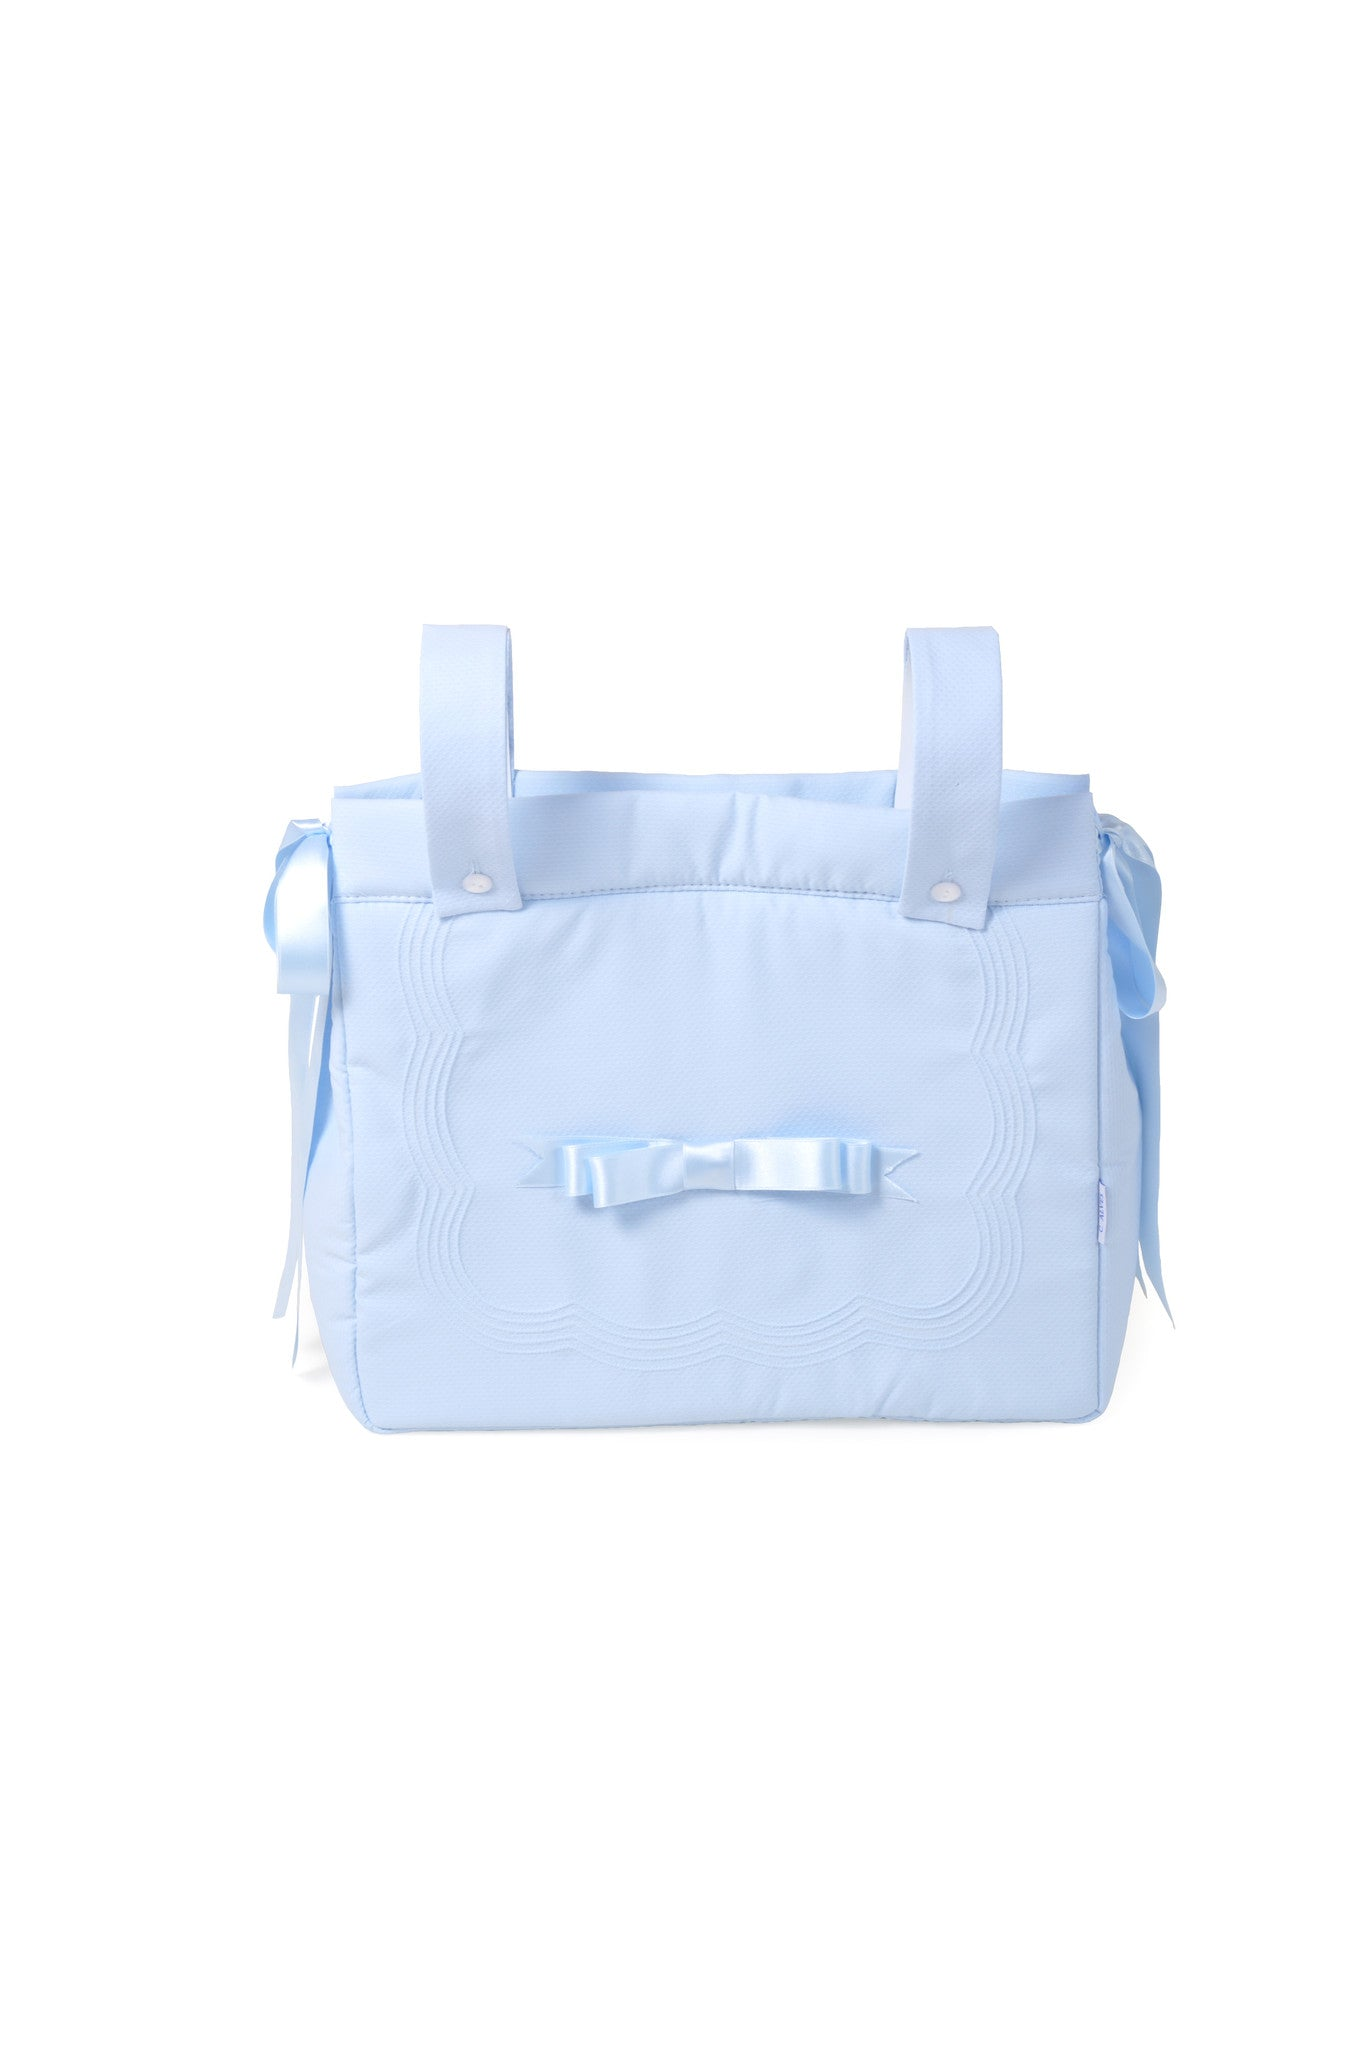 Patucos Cotton Candy Bag for Stroller